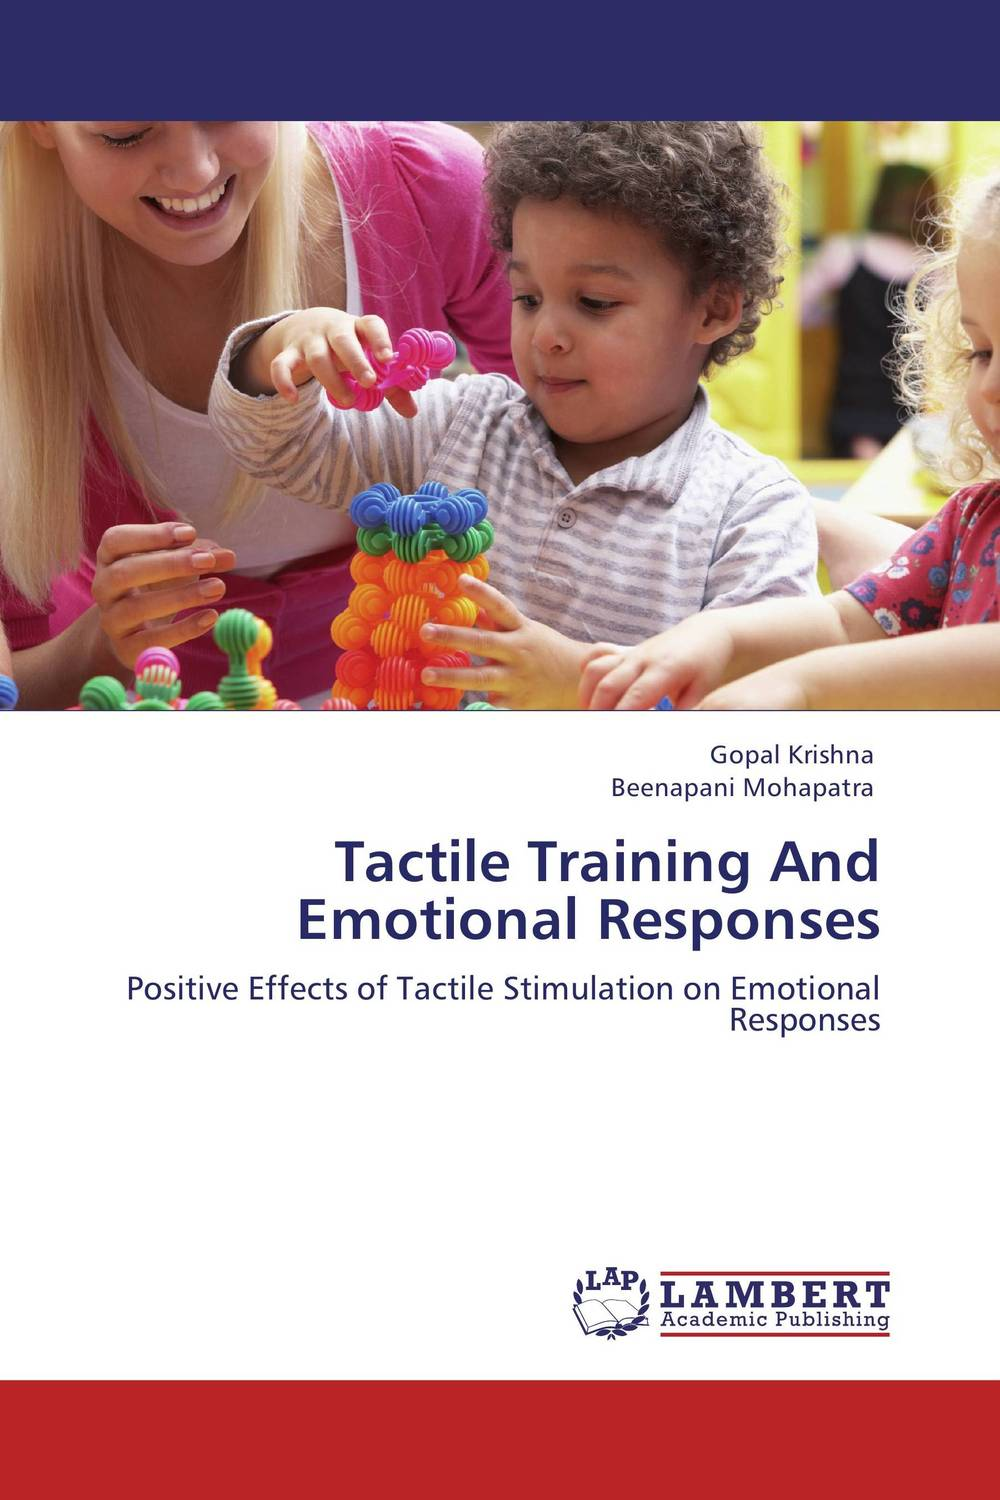 Tactile Training And Emotional Responses systems training for emotional predictability and problem solving for borderline personality disorder